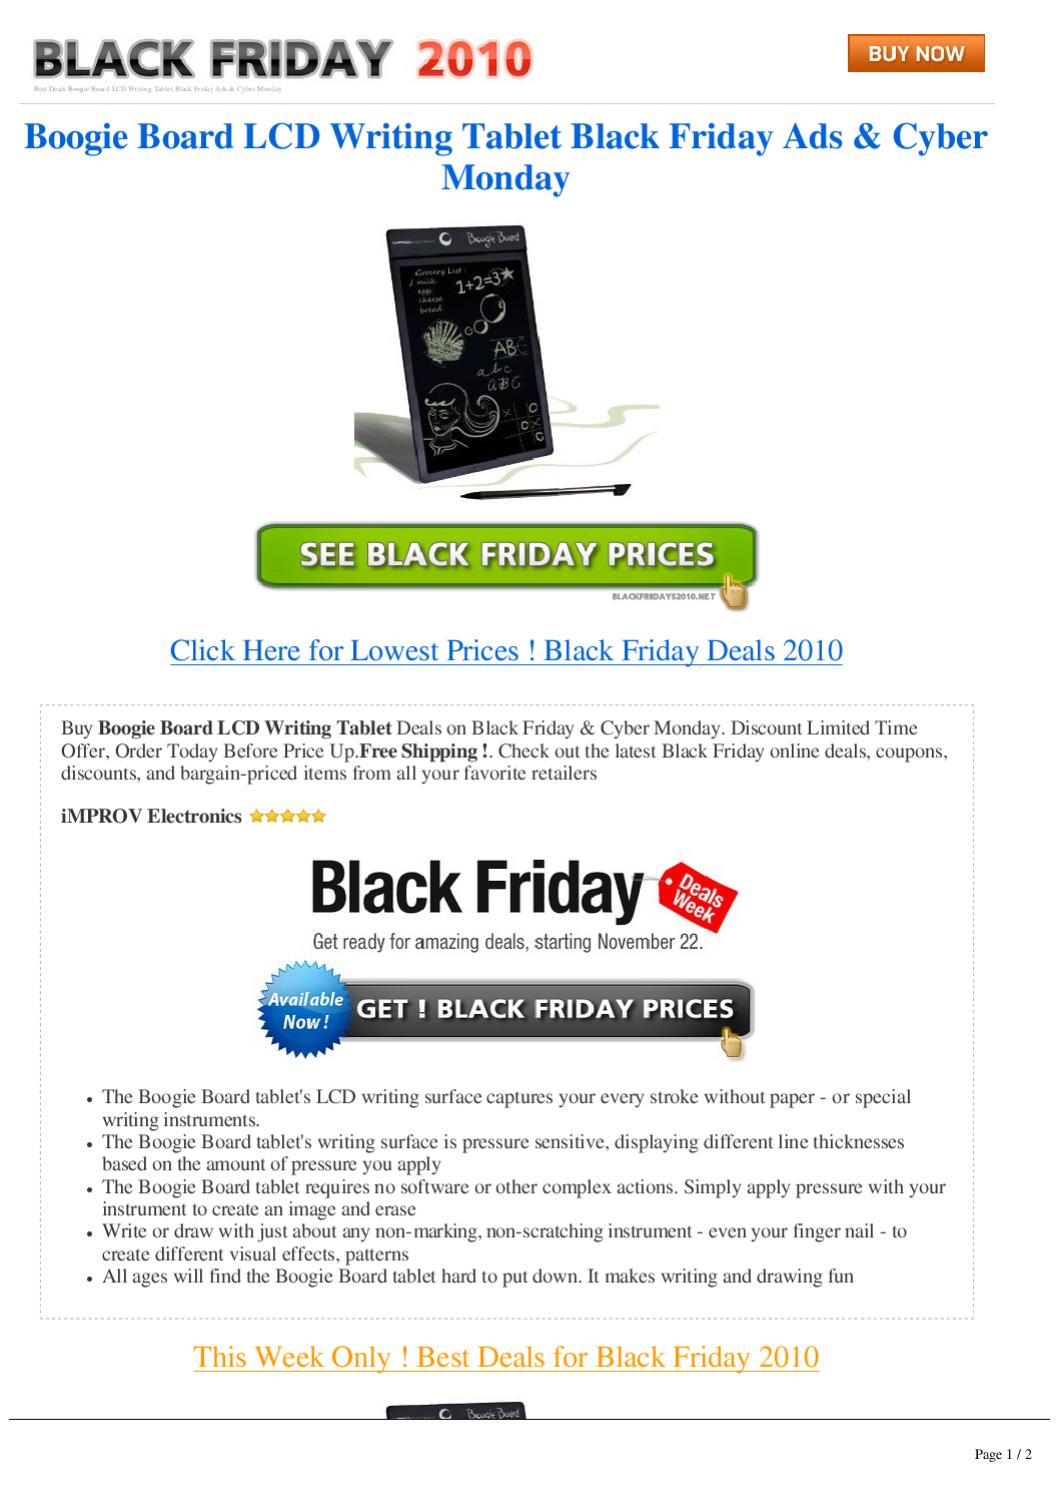 black friday descriptive essay Diana esl6a 11/29/13 shopping on black friday in america, when thanks giving is around the corner, many people can not wait for shopping discount commodities.